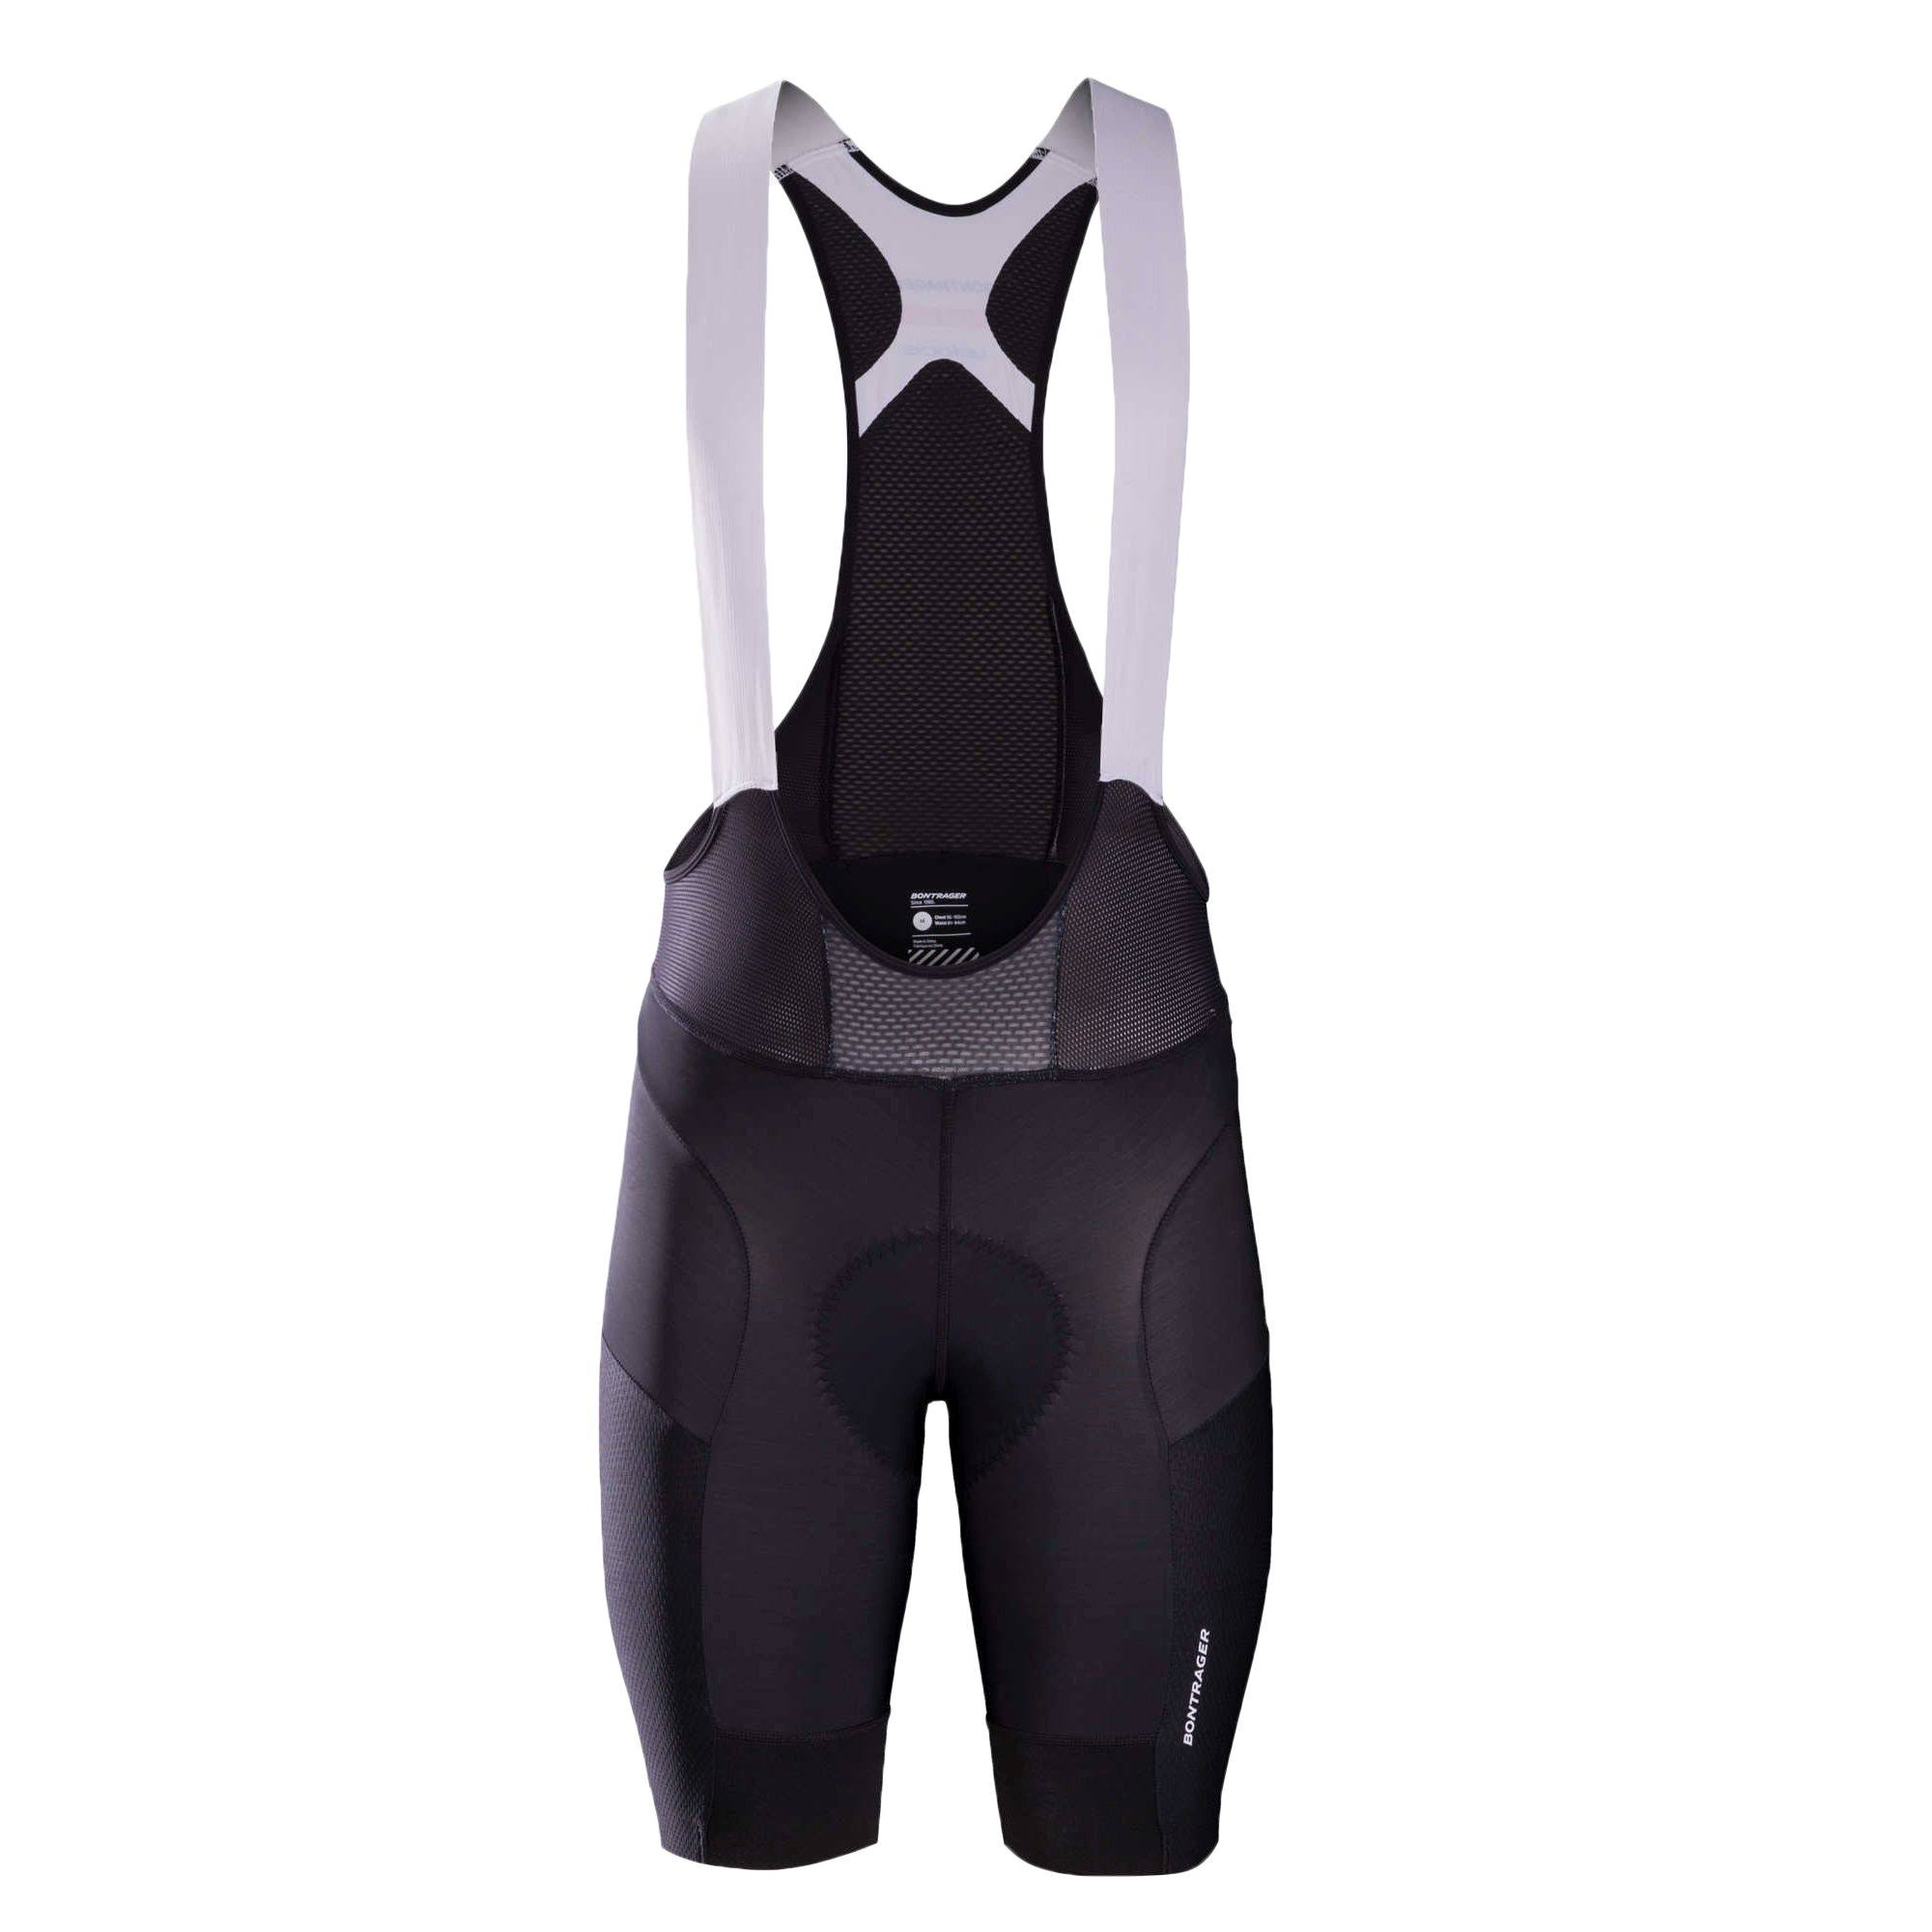 Bontrager Velocis Bib Short - Black, Large